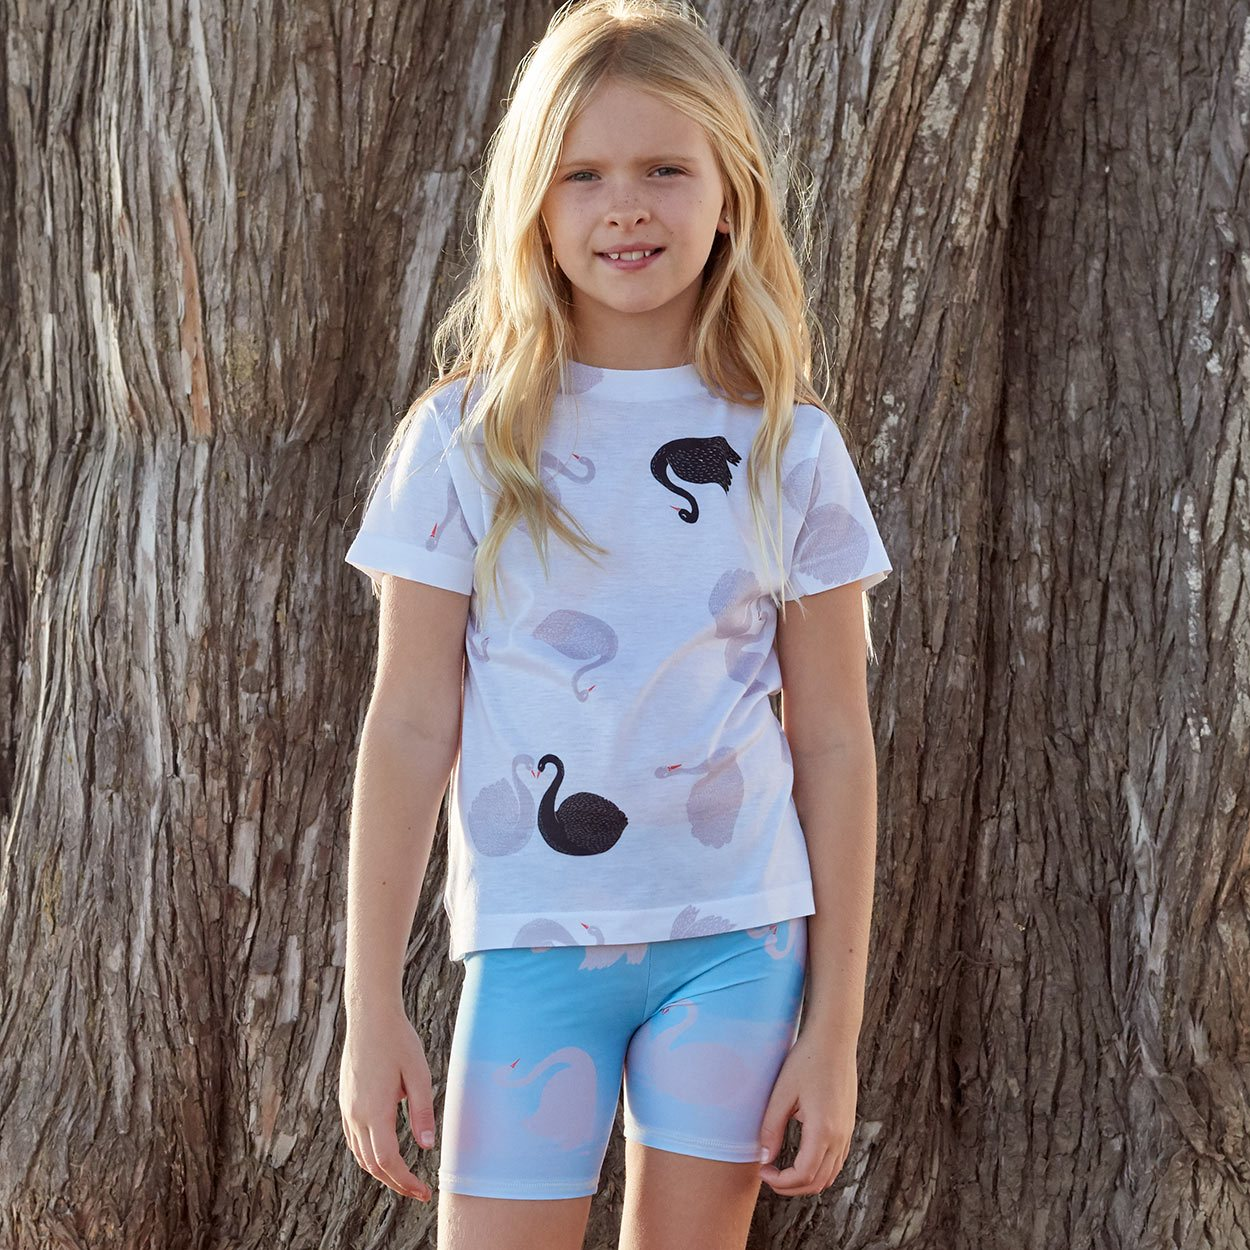 Girls All Over Swans Graphic Tshirt White Black Gray Size Xs L Happy Teenage Girl At The Ocean Standing In The Shade Sunpoplife